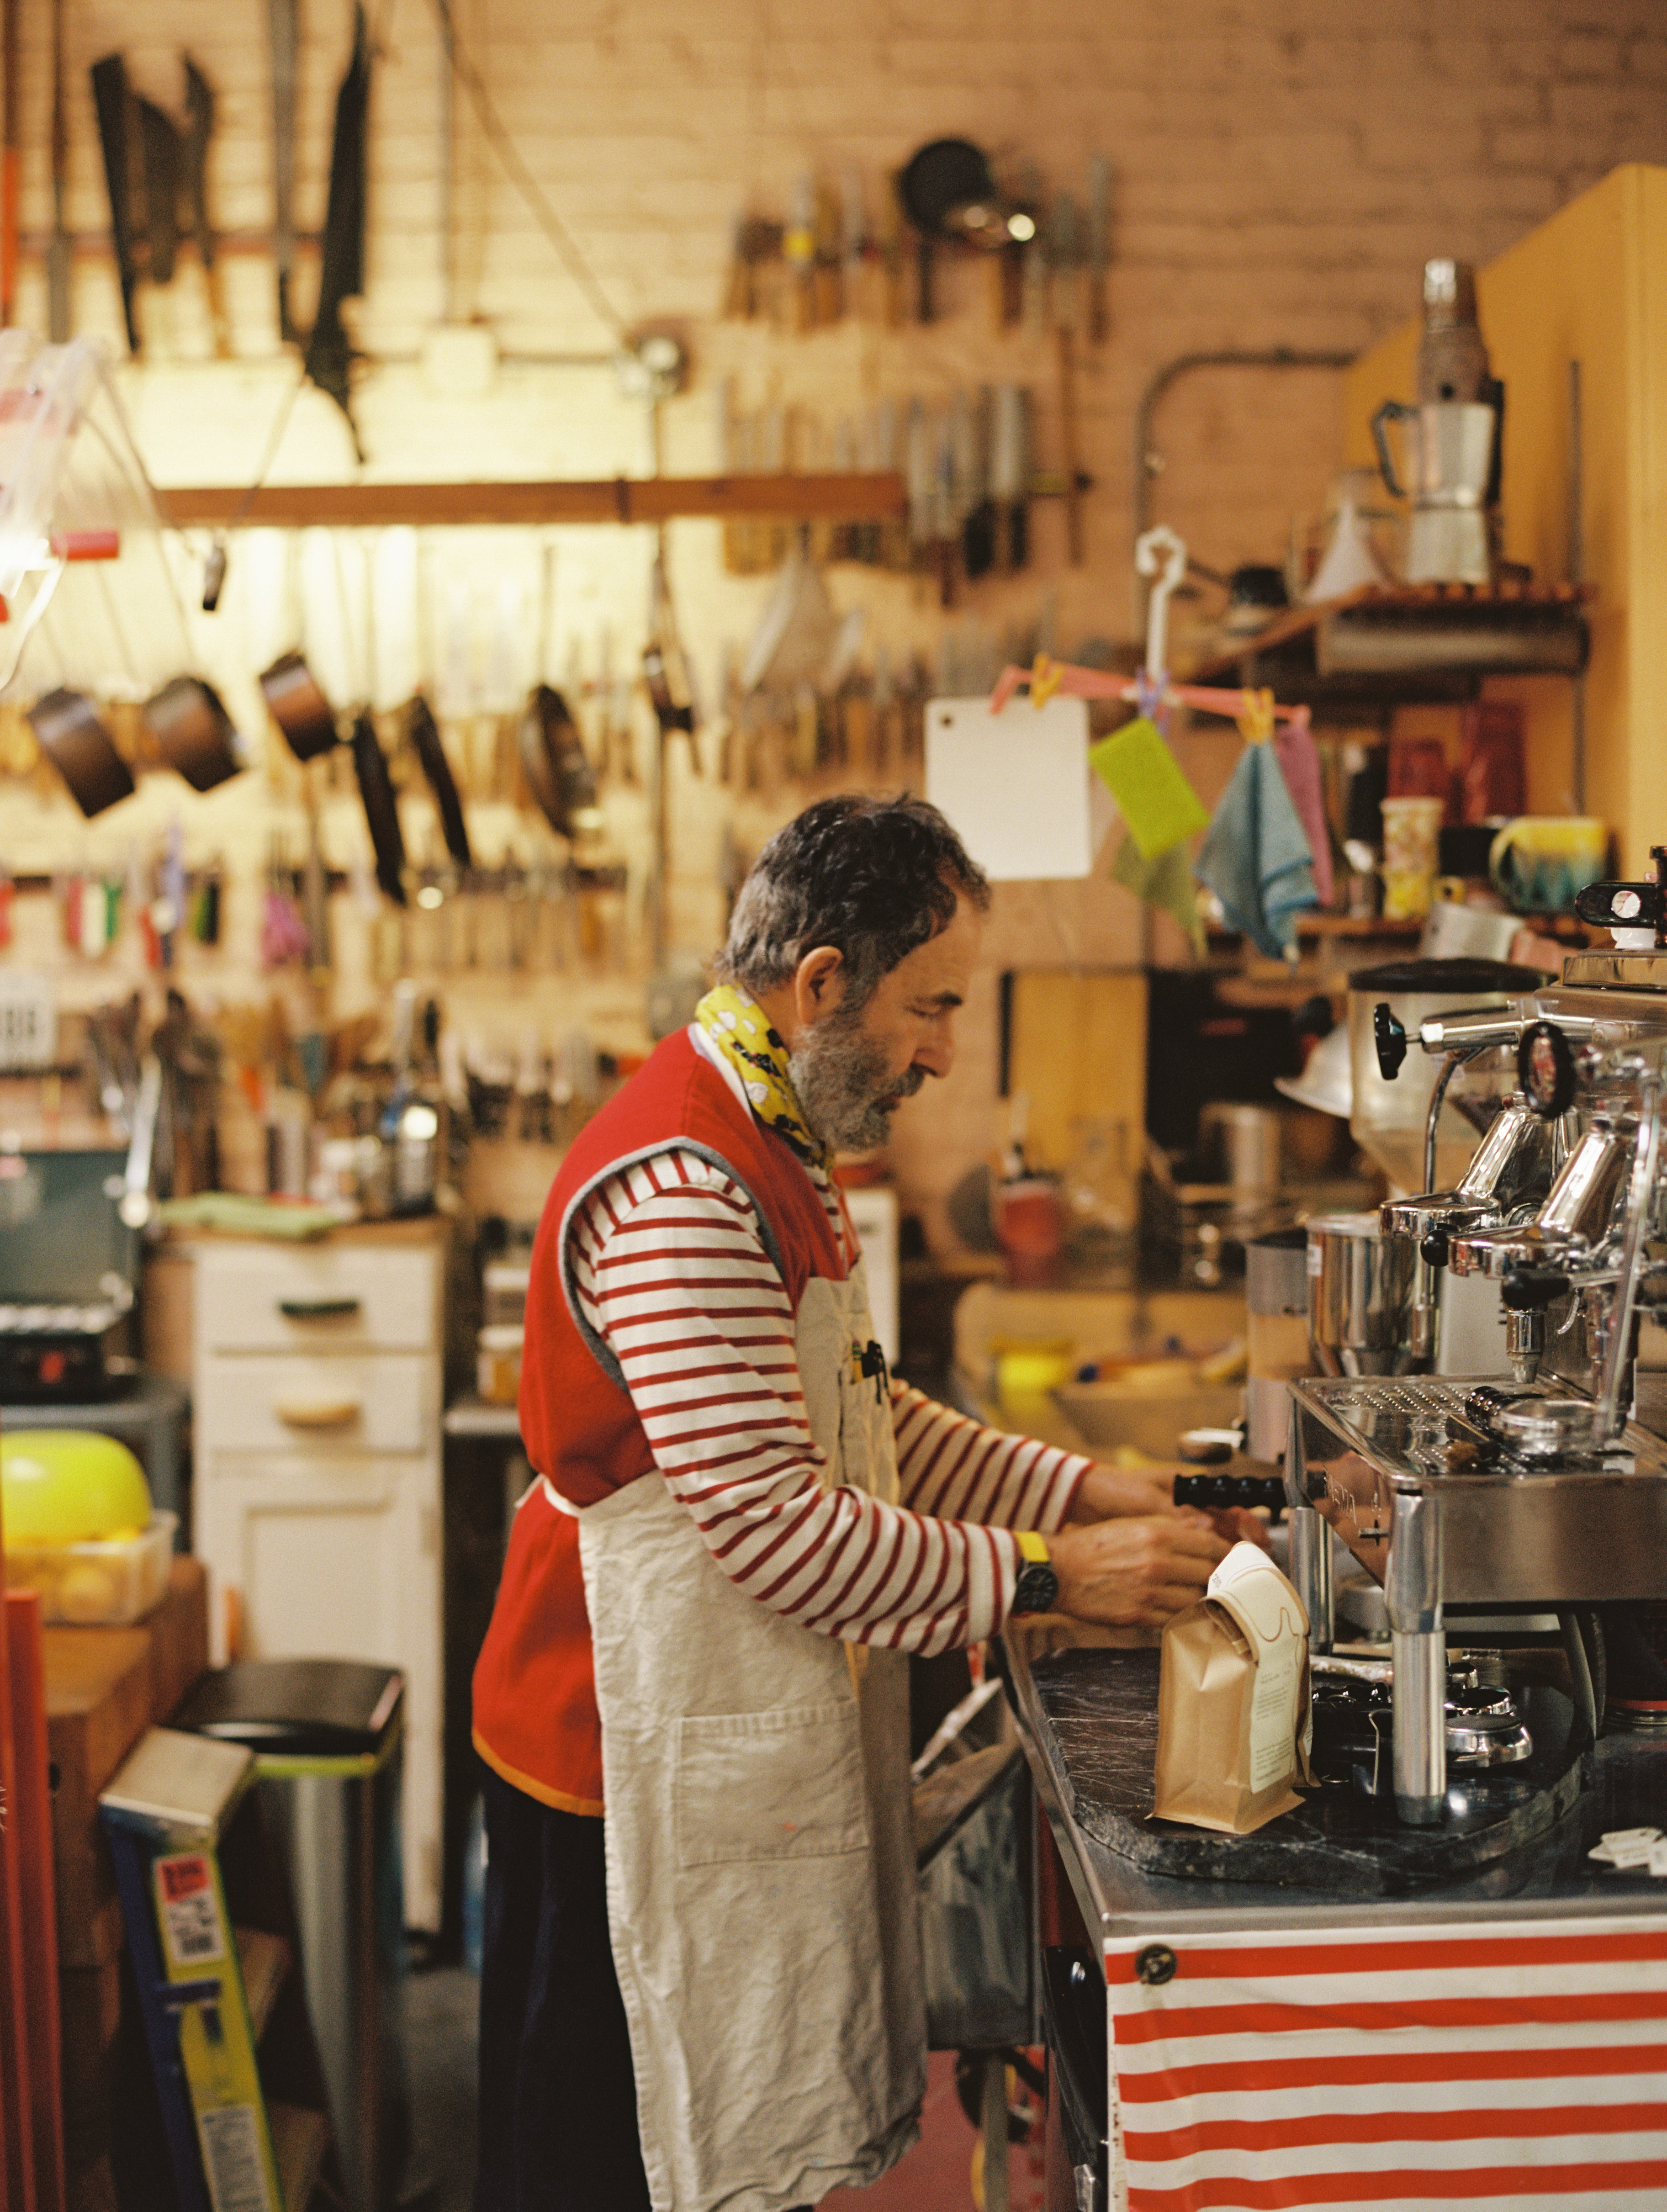 Peter Shire making espresso on his Faema E61 Jubile in Echo Park, Los Angeles. Photo by Justin Chung.